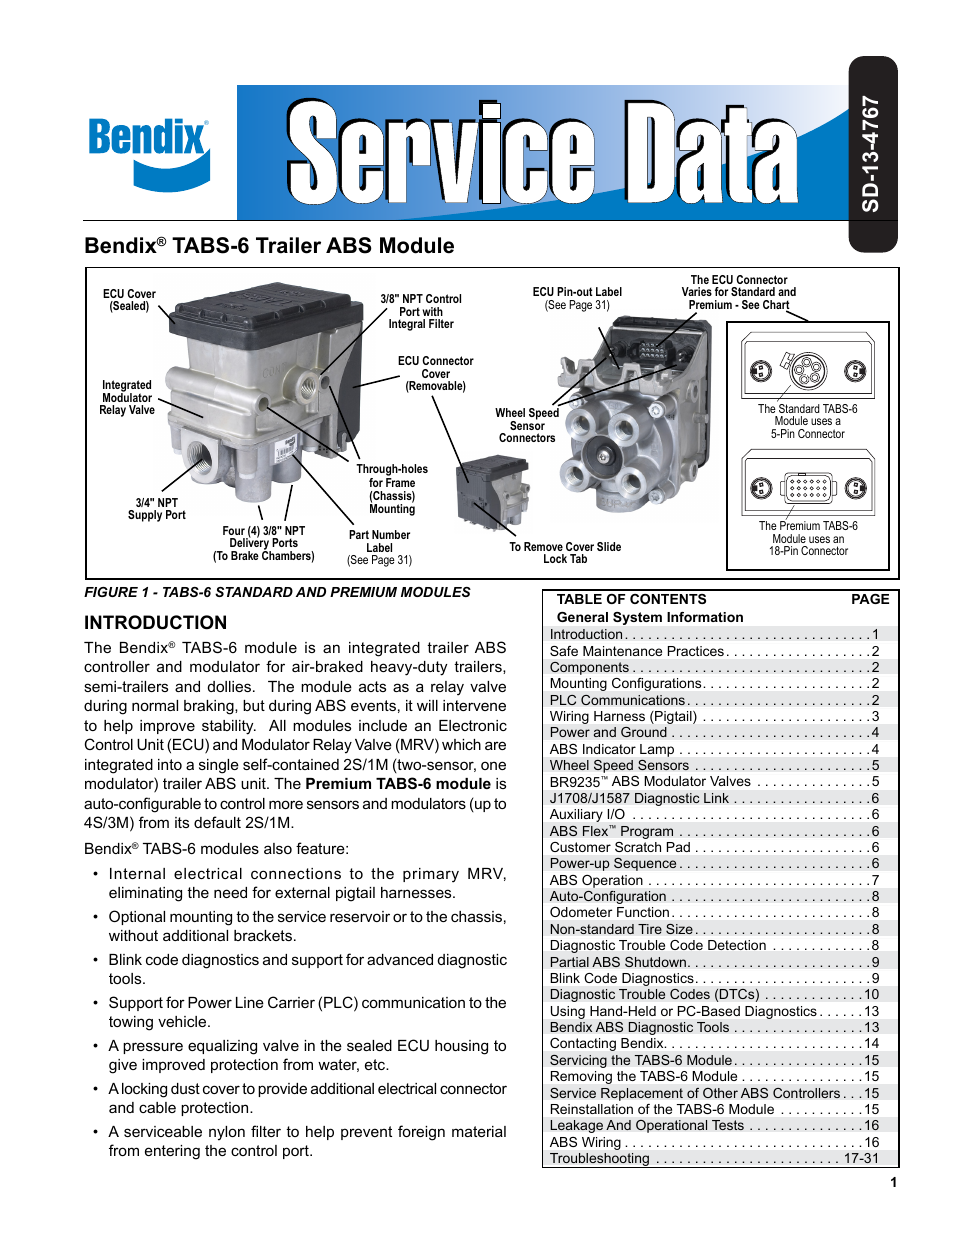 bendix commercial vehicle systems tabs 6 trailer abs module page1 bendix commercial vehicle systems tabs 6 trailer abs module user